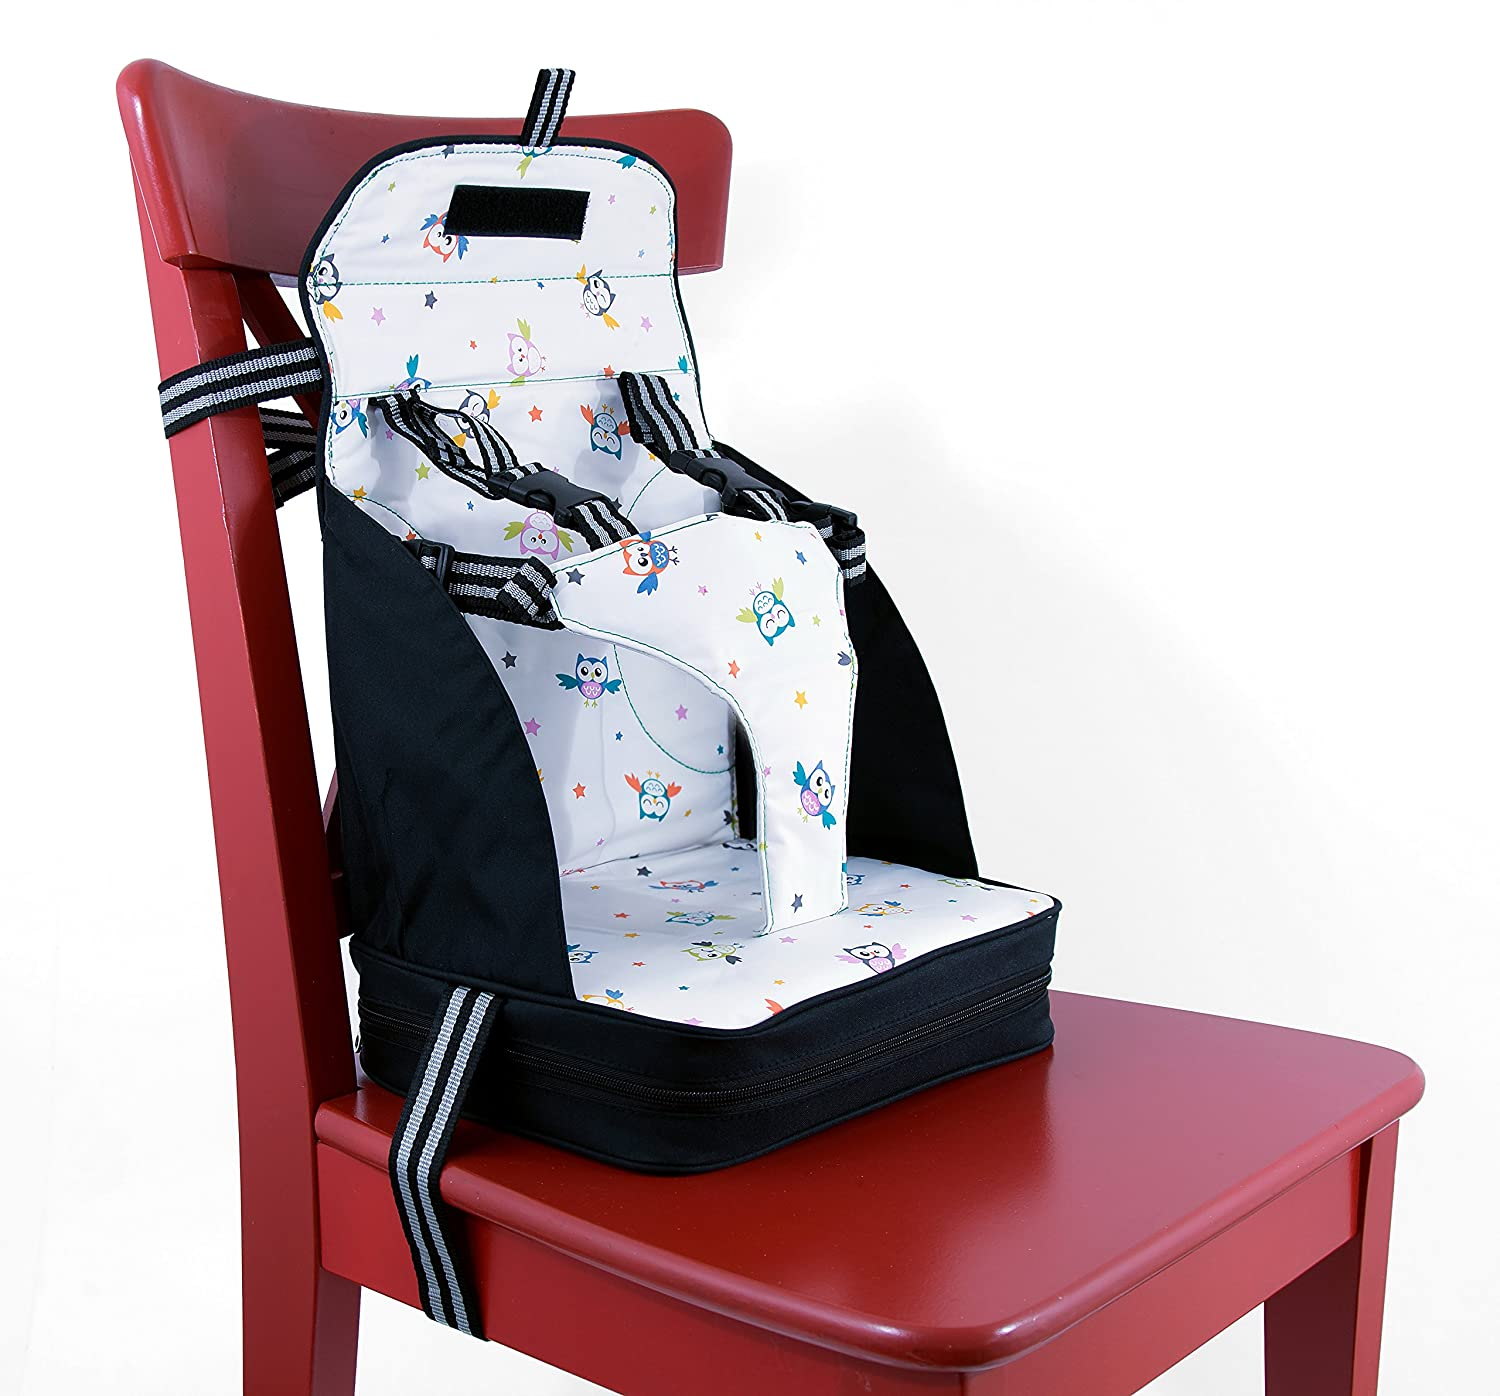 sc 1 st  Amazon UK & Venture Travel Booster Seat: Amazon.co.uk: Baby